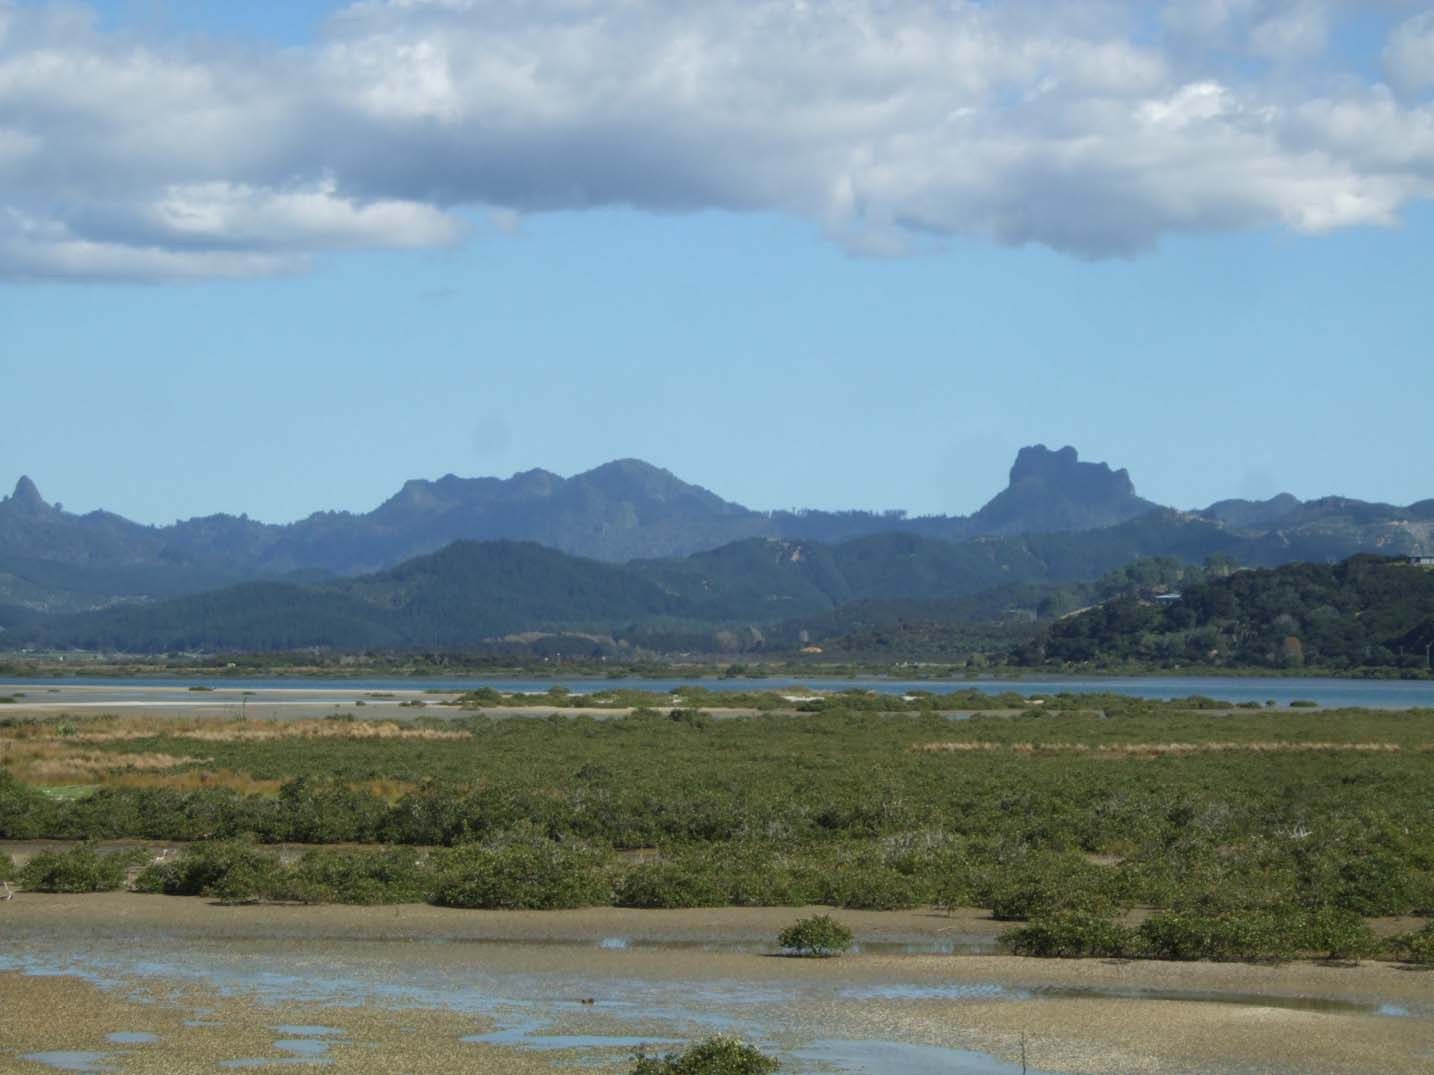 Mountains in the background, ocean and forest closer to camera. - Coromandel Peninsula landscape